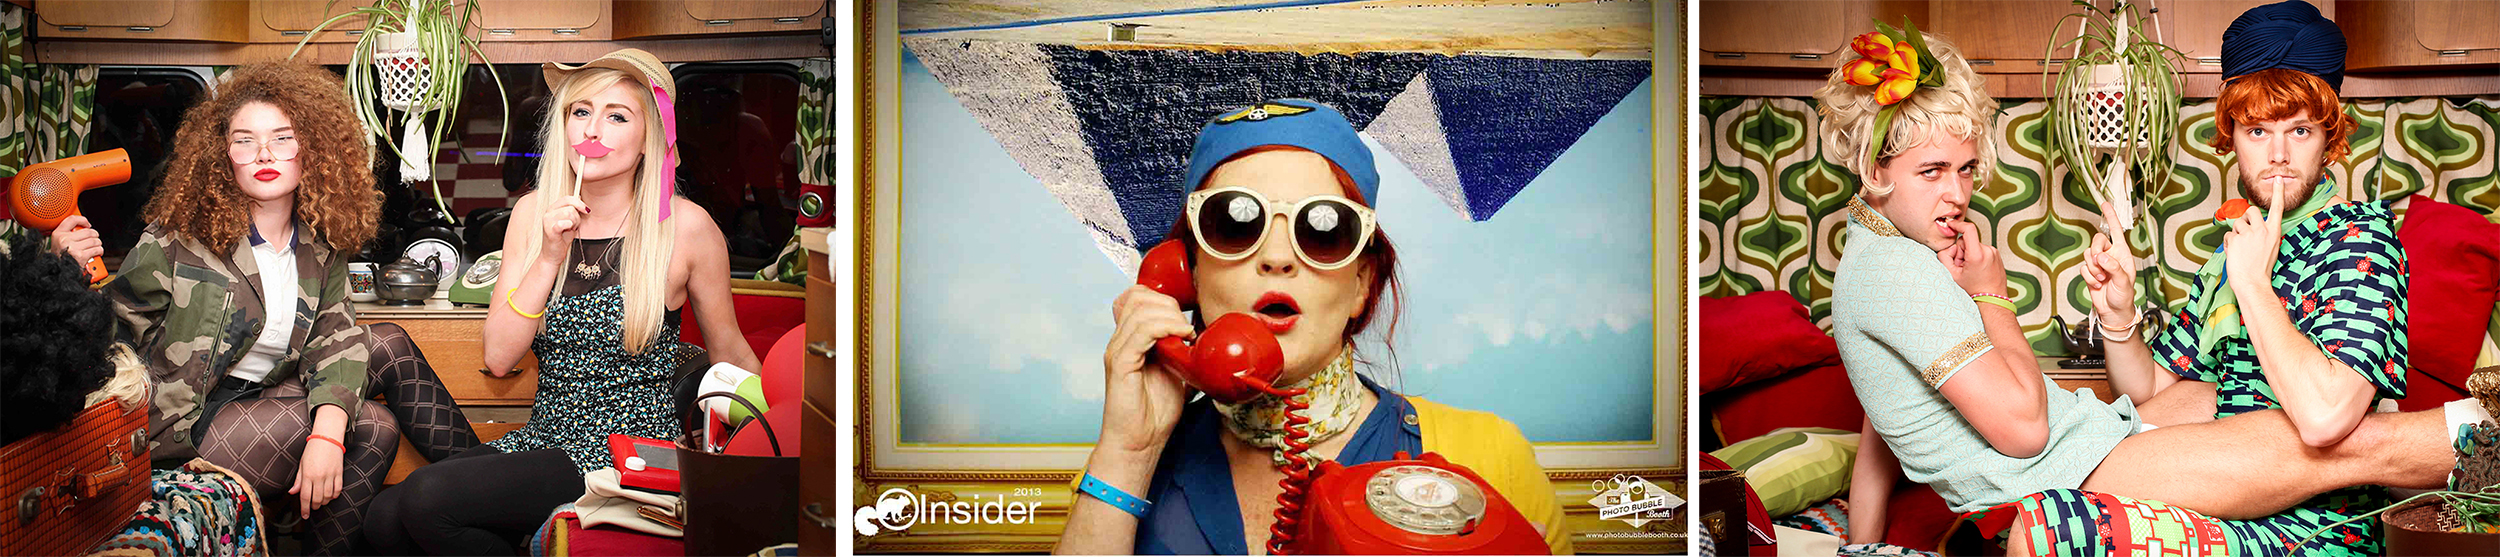 Gladys and the bubblettes photo booth experience, Scotland - Specialists in creative, immersive & theatrical fun, the most authentic & original photo booth UK.